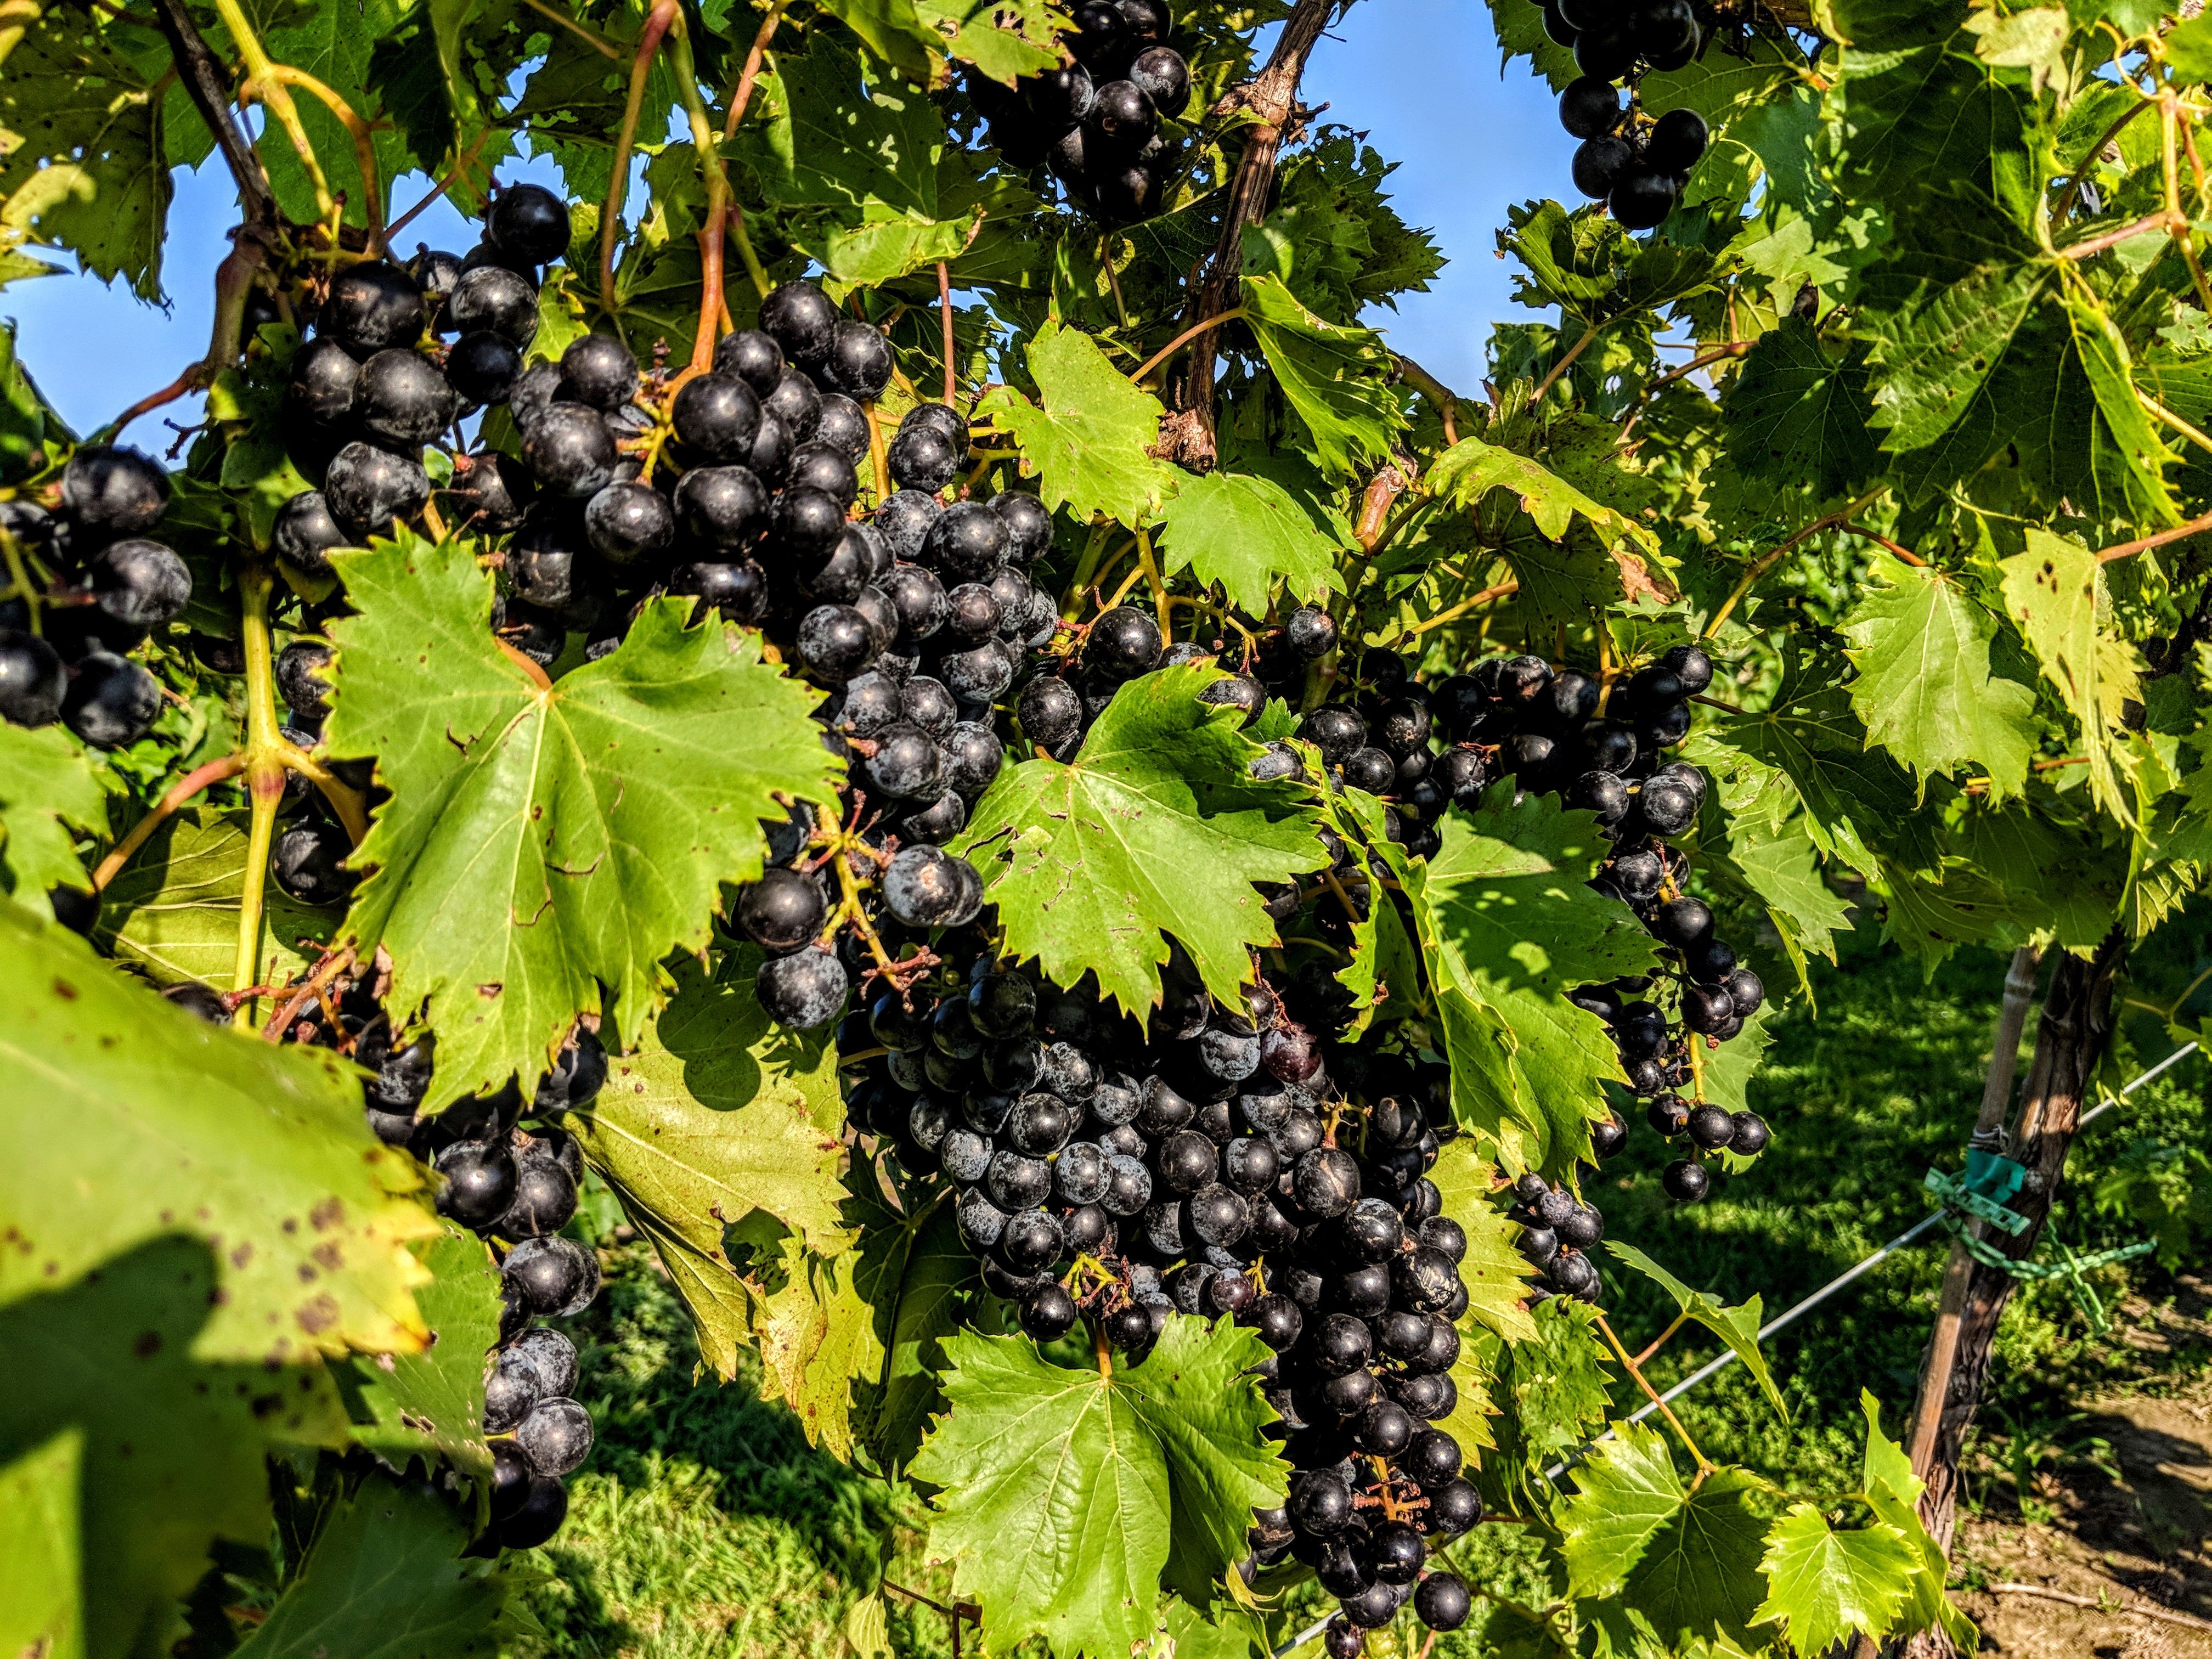 A bunch of grapes at the Meigs Farms